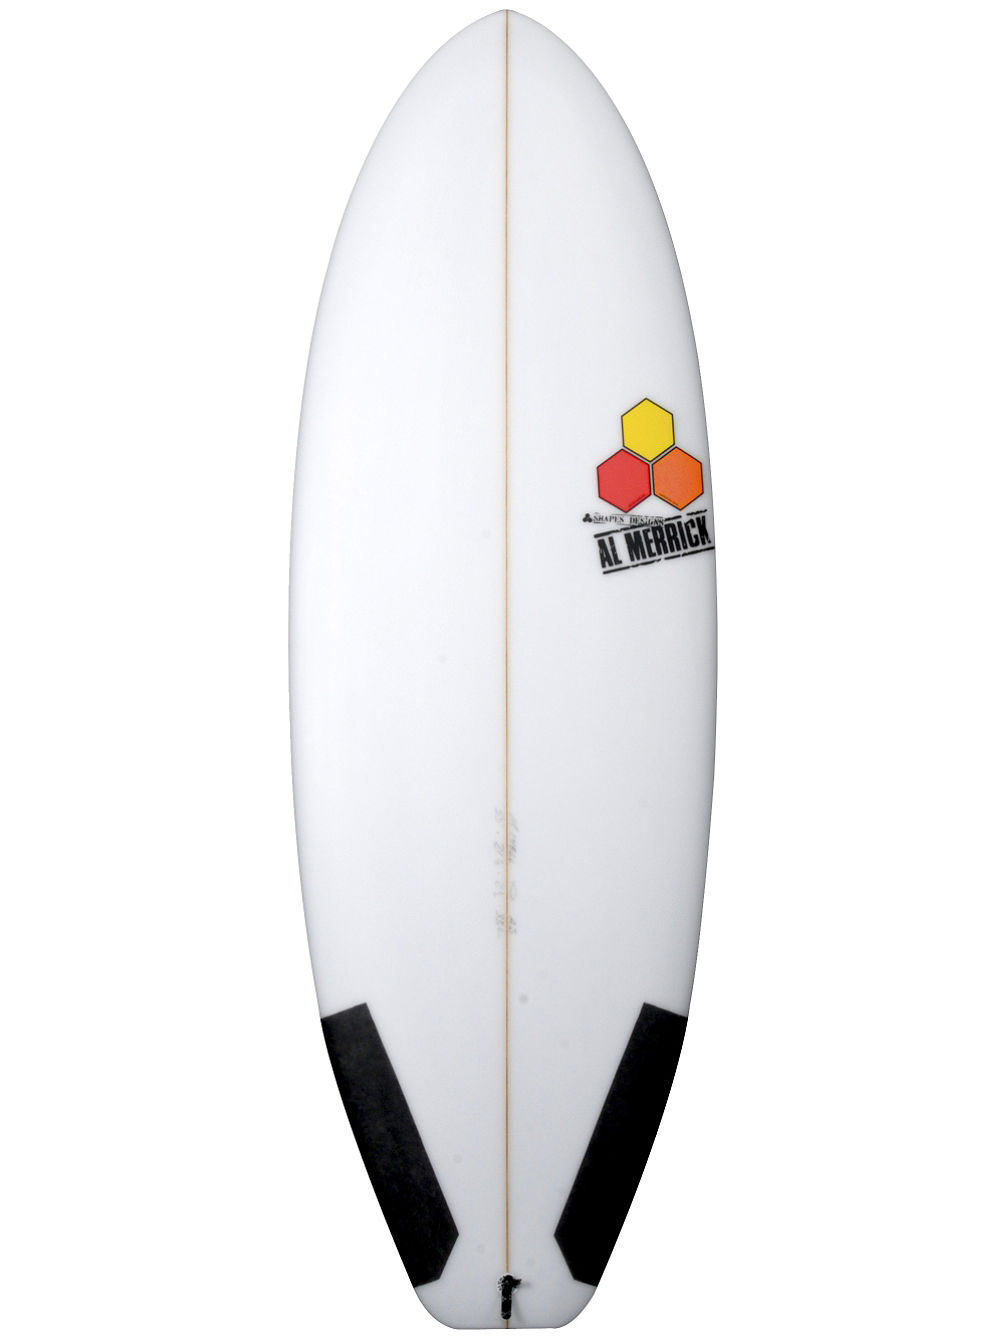 Av Joe 6'1 Surfboard